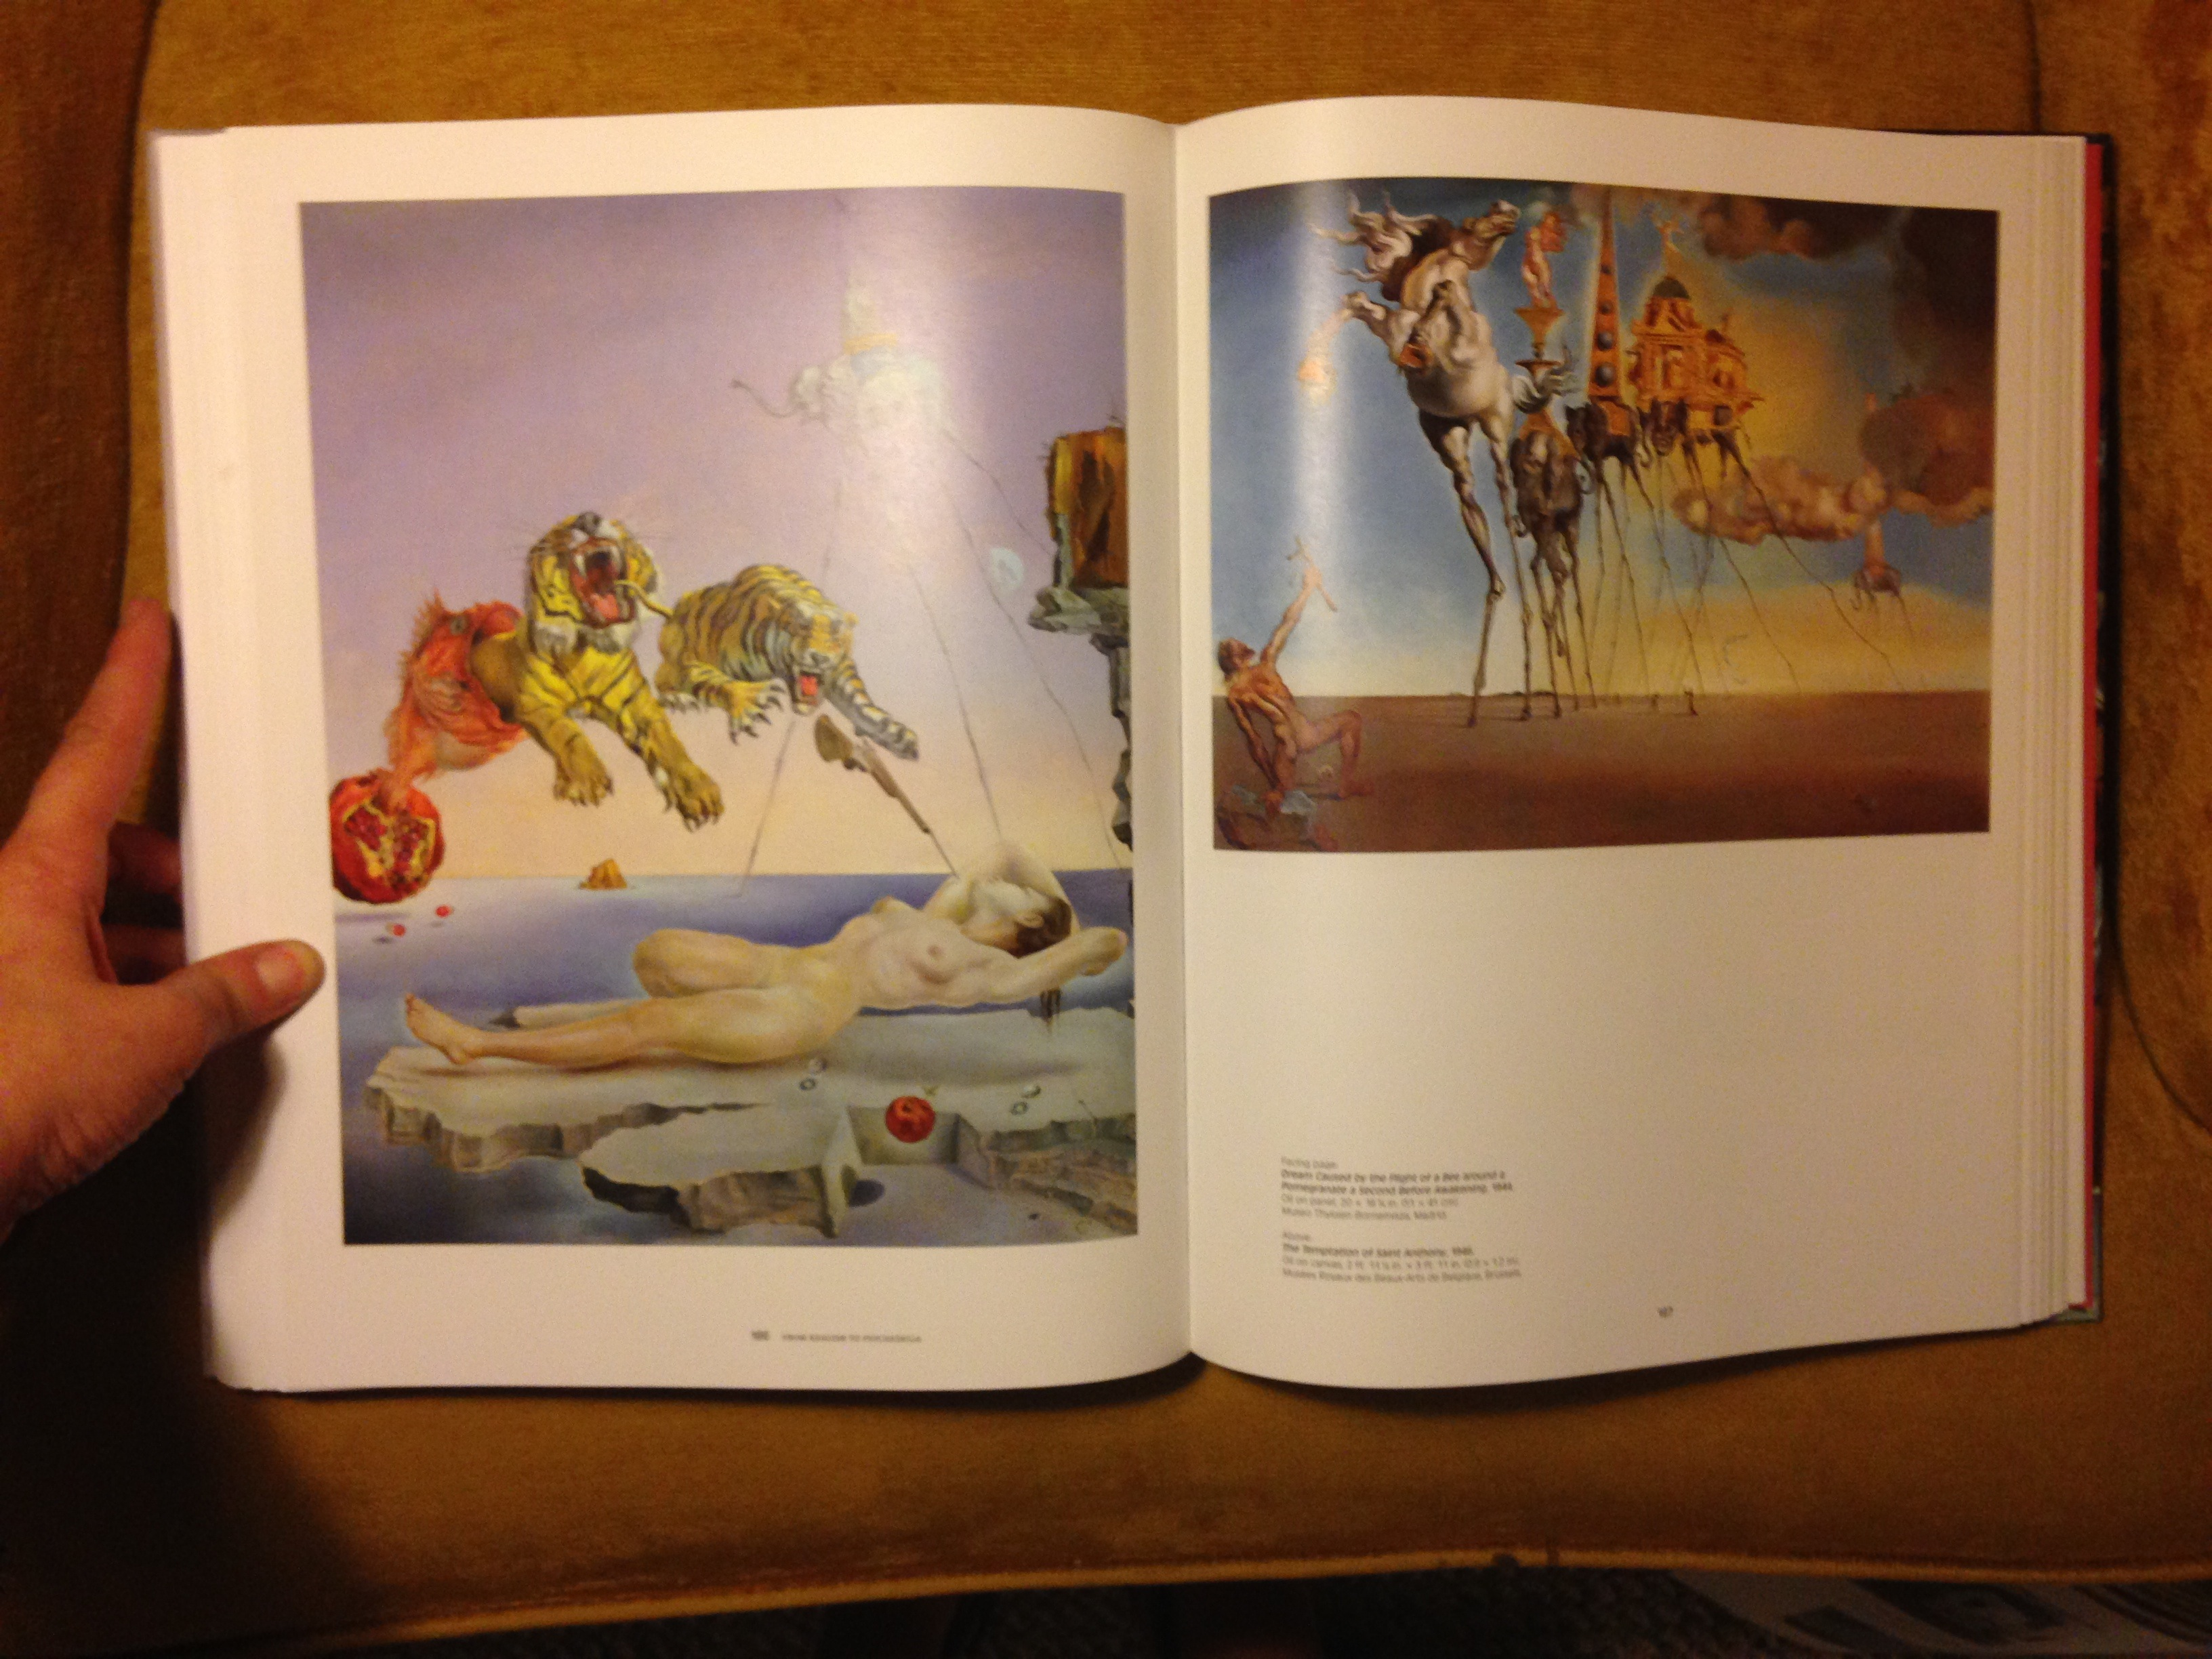 Salvador Dali: The Making of an Artist | The Art Book Review